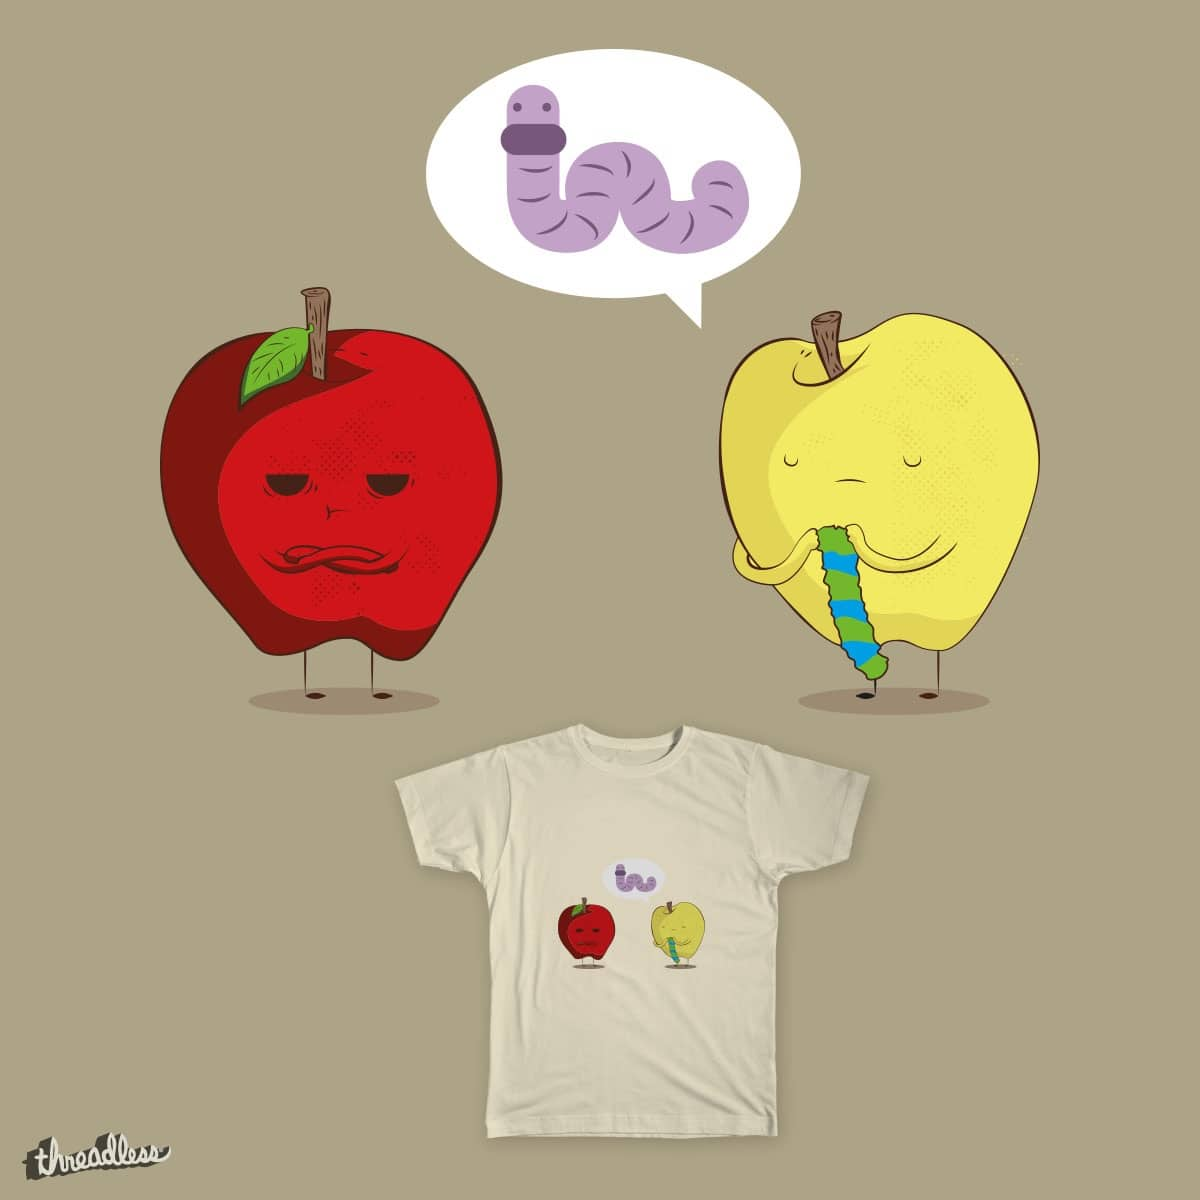 is a worm by Tlachi on Threadless